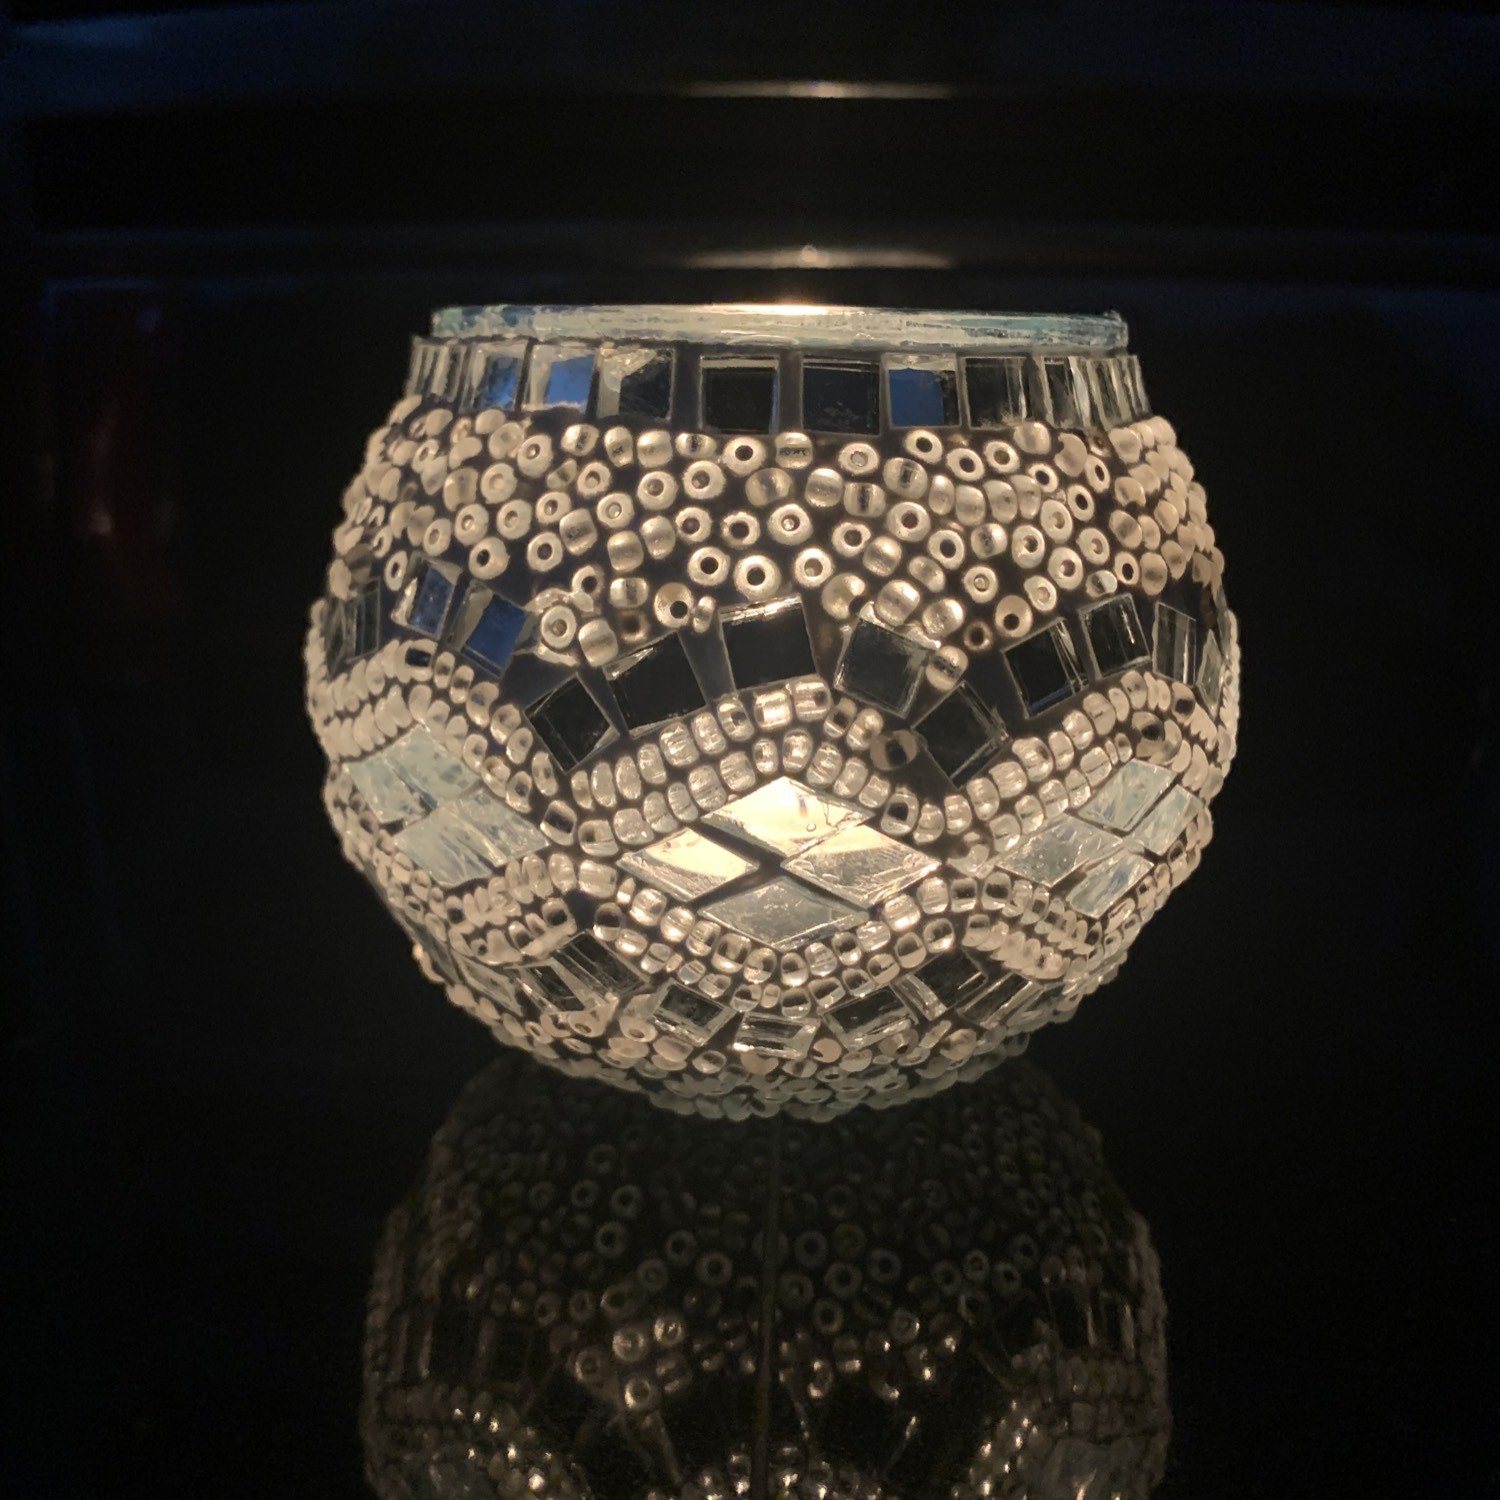 Handmade Mosaic Glass Candle Holder - Silver/White